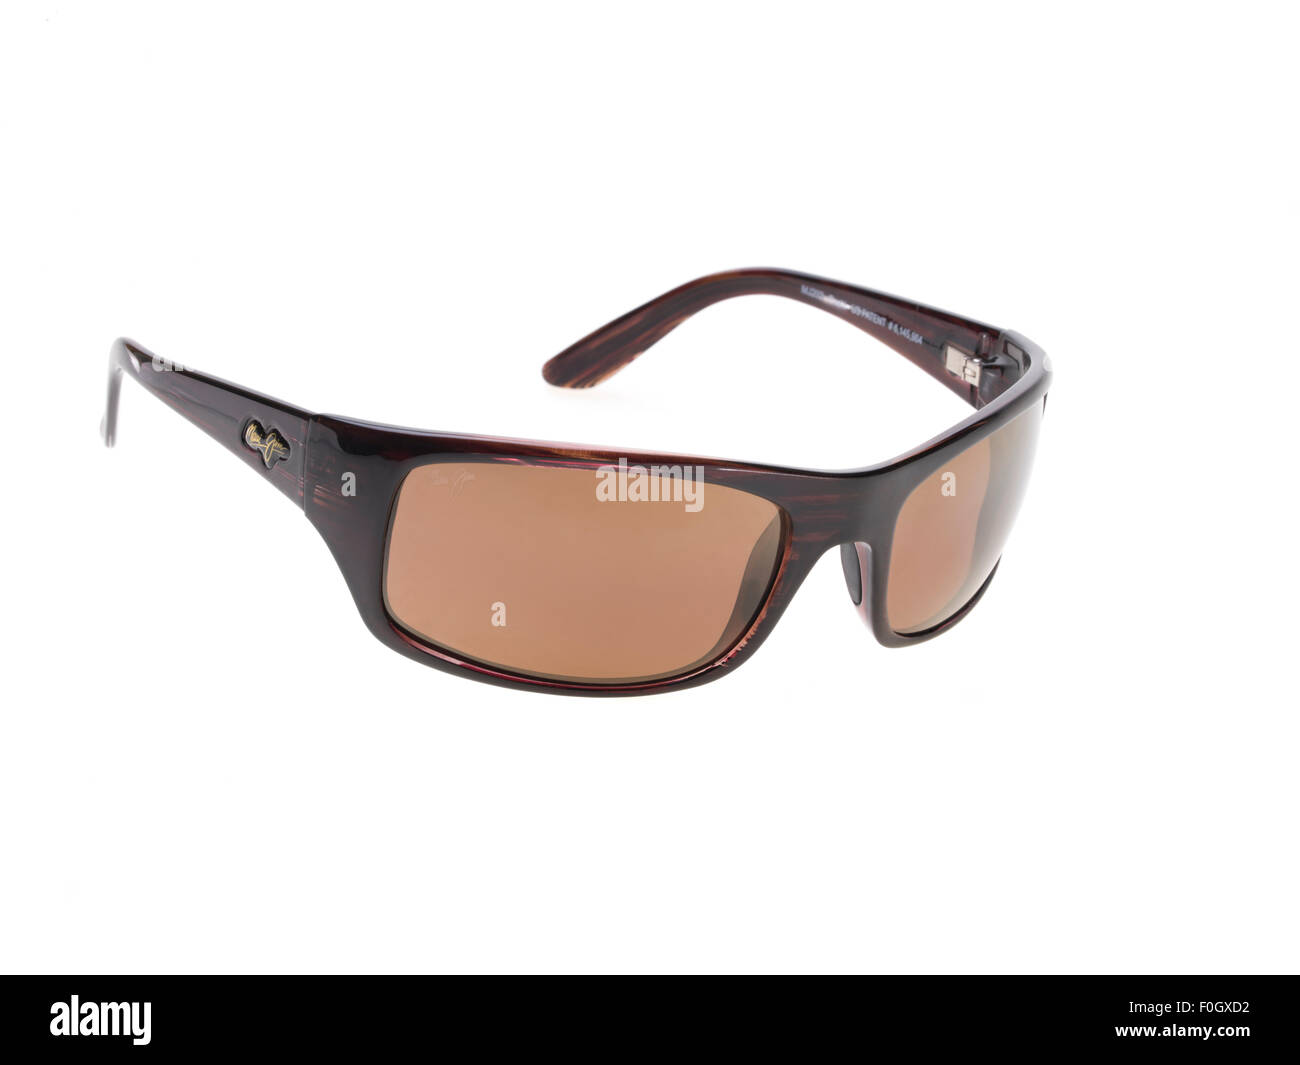 Maui Jim Polarized Sunglasses  created in Hawaii, USA Model - Peahi, Burgundy Tortoise with HCL Bronze lenses - Stock Image